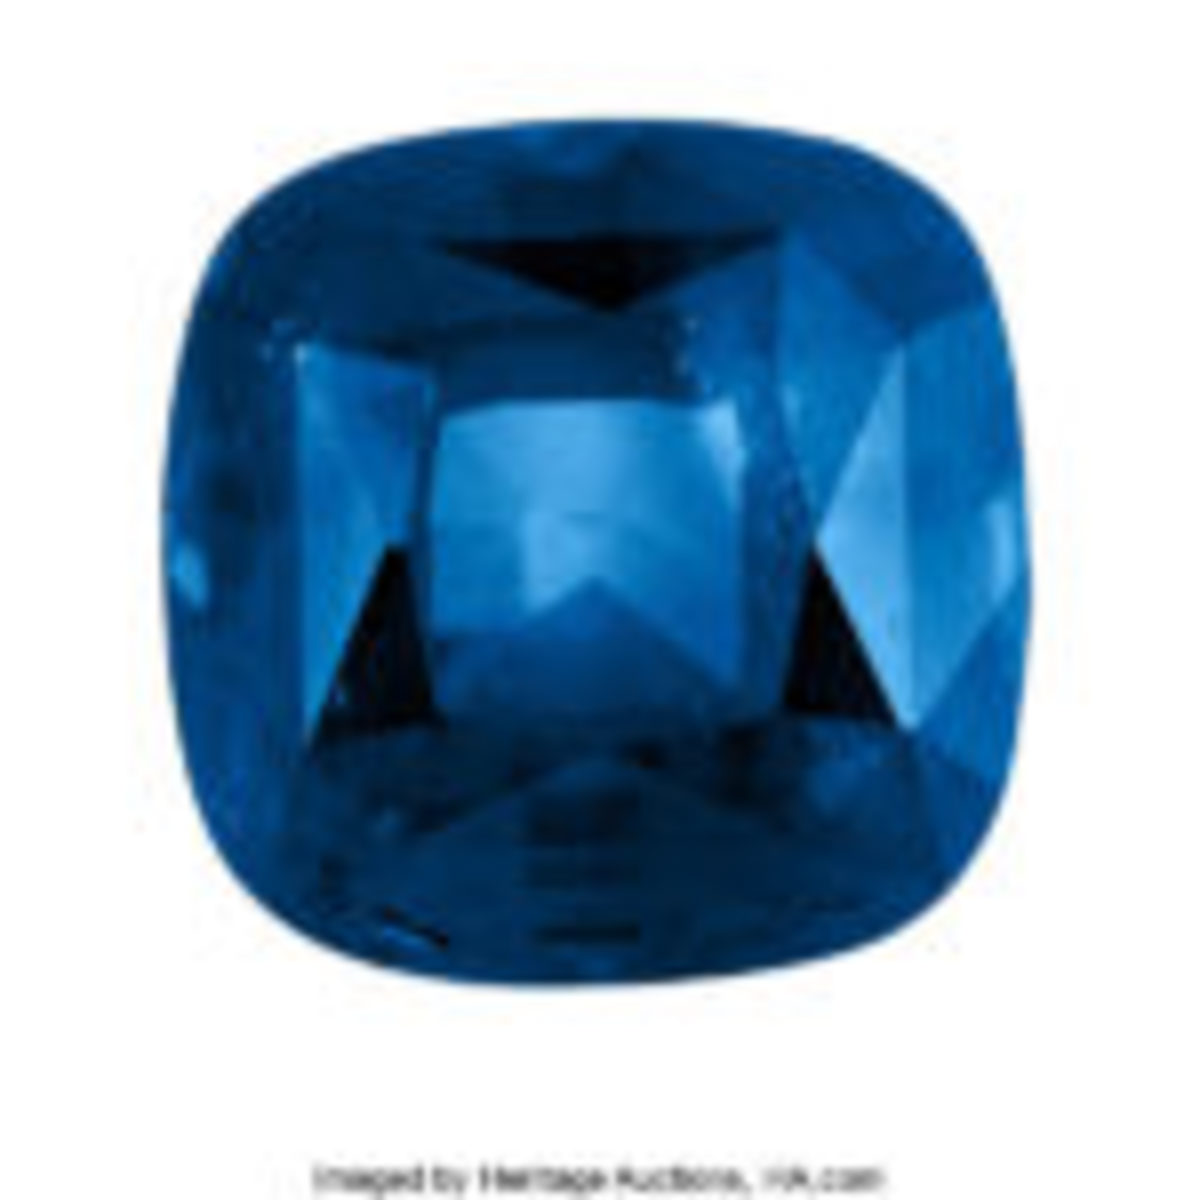 Cushion-cut sapphire, 7.44 carats, GIA Certificate #2185791664, estimate: $20,000-$30,000. Courtesy of Heritage Auctions